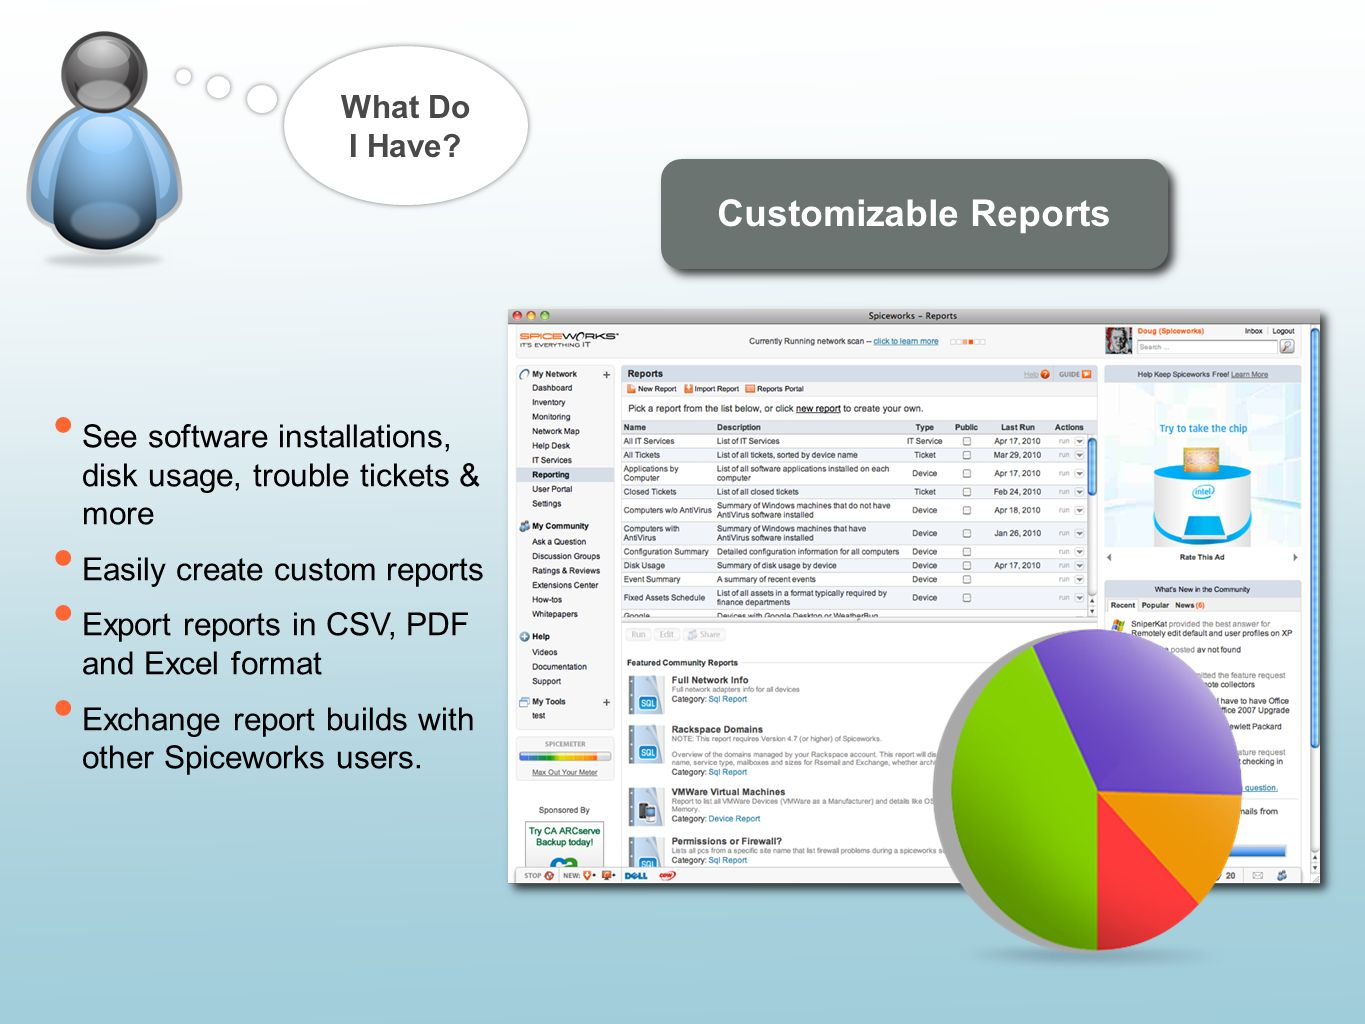 See software installations, disk usage, trouble tickets & more Easily create custom reports Export reports in CSV, PDF and Excel format Exchange report builds with other Spiceworks users.